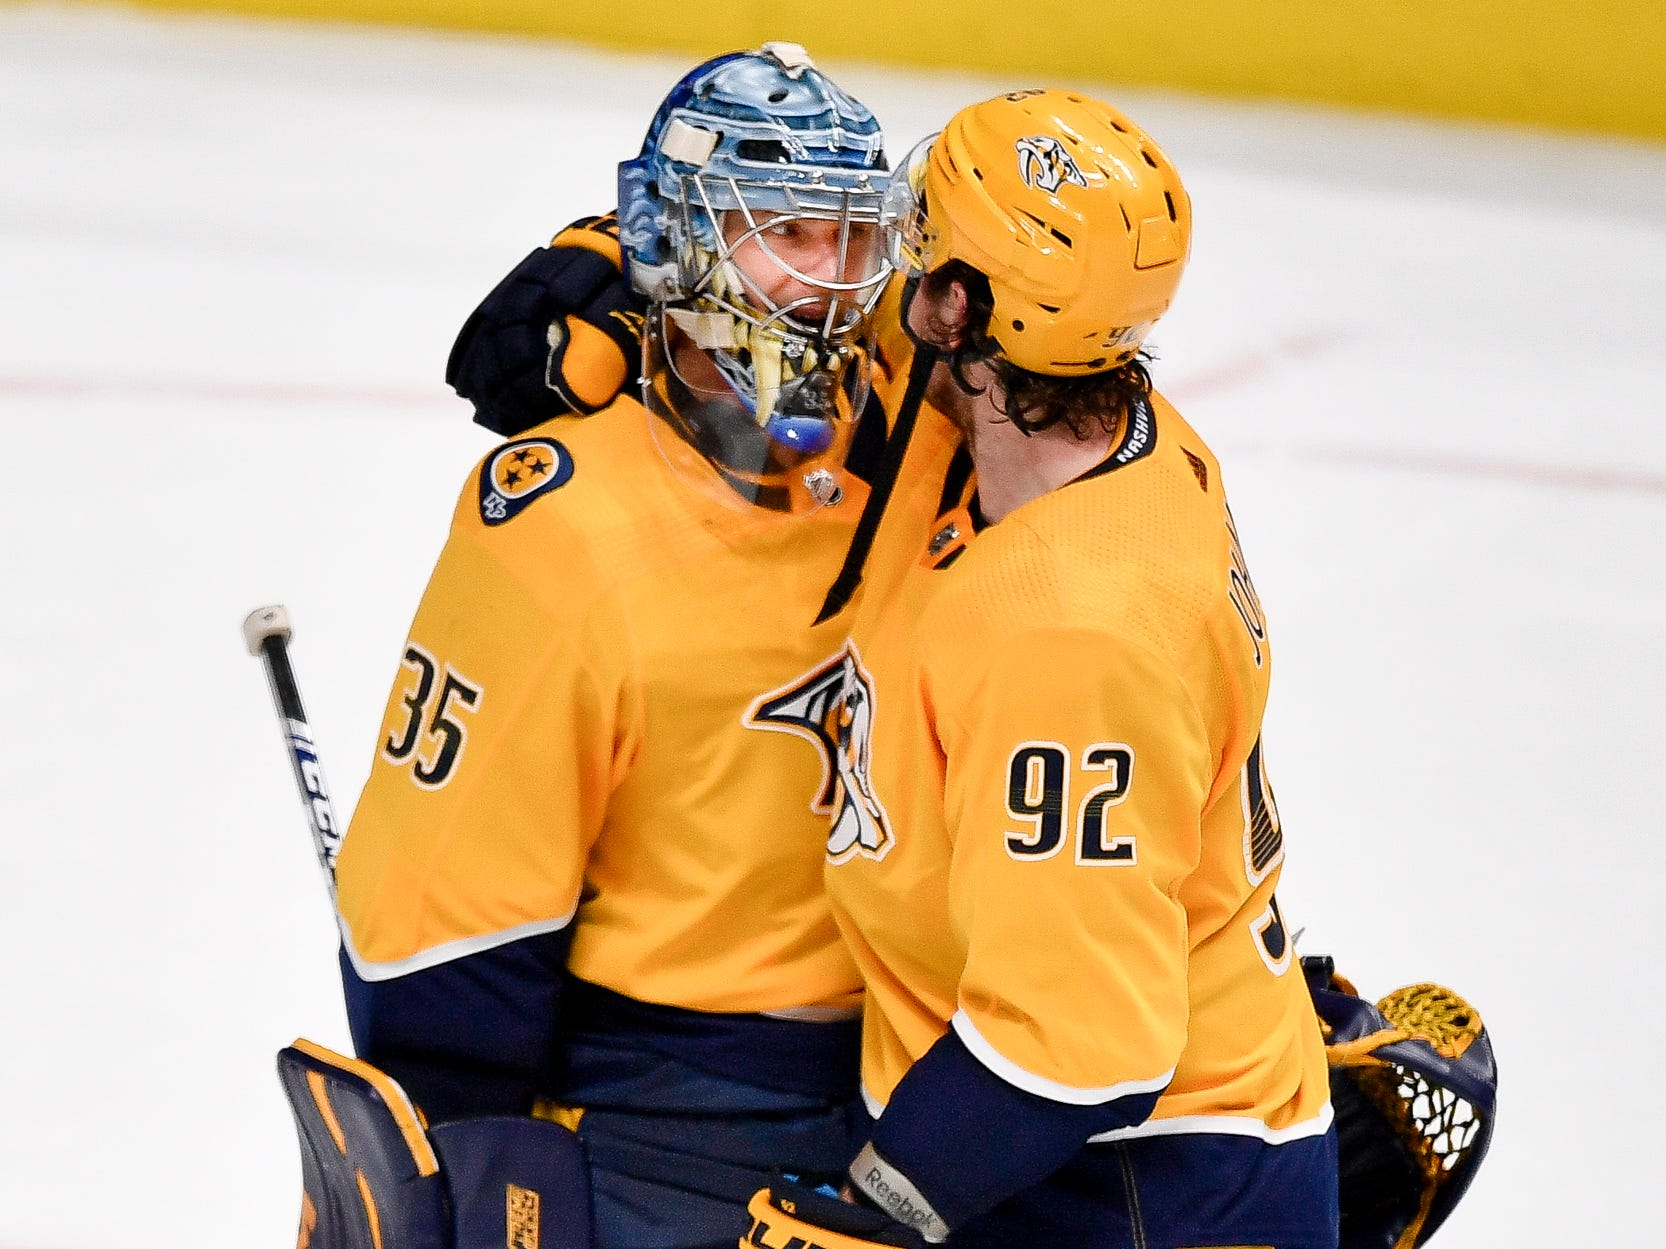 Nashville Predators center Ryan Johansen (92) celebrates defeating the Vancouver Canucks with goaltender Pekka Rinne (35) at Bridgestone Arena in Nashville, Tenn., Thursday, April 4, 2019.